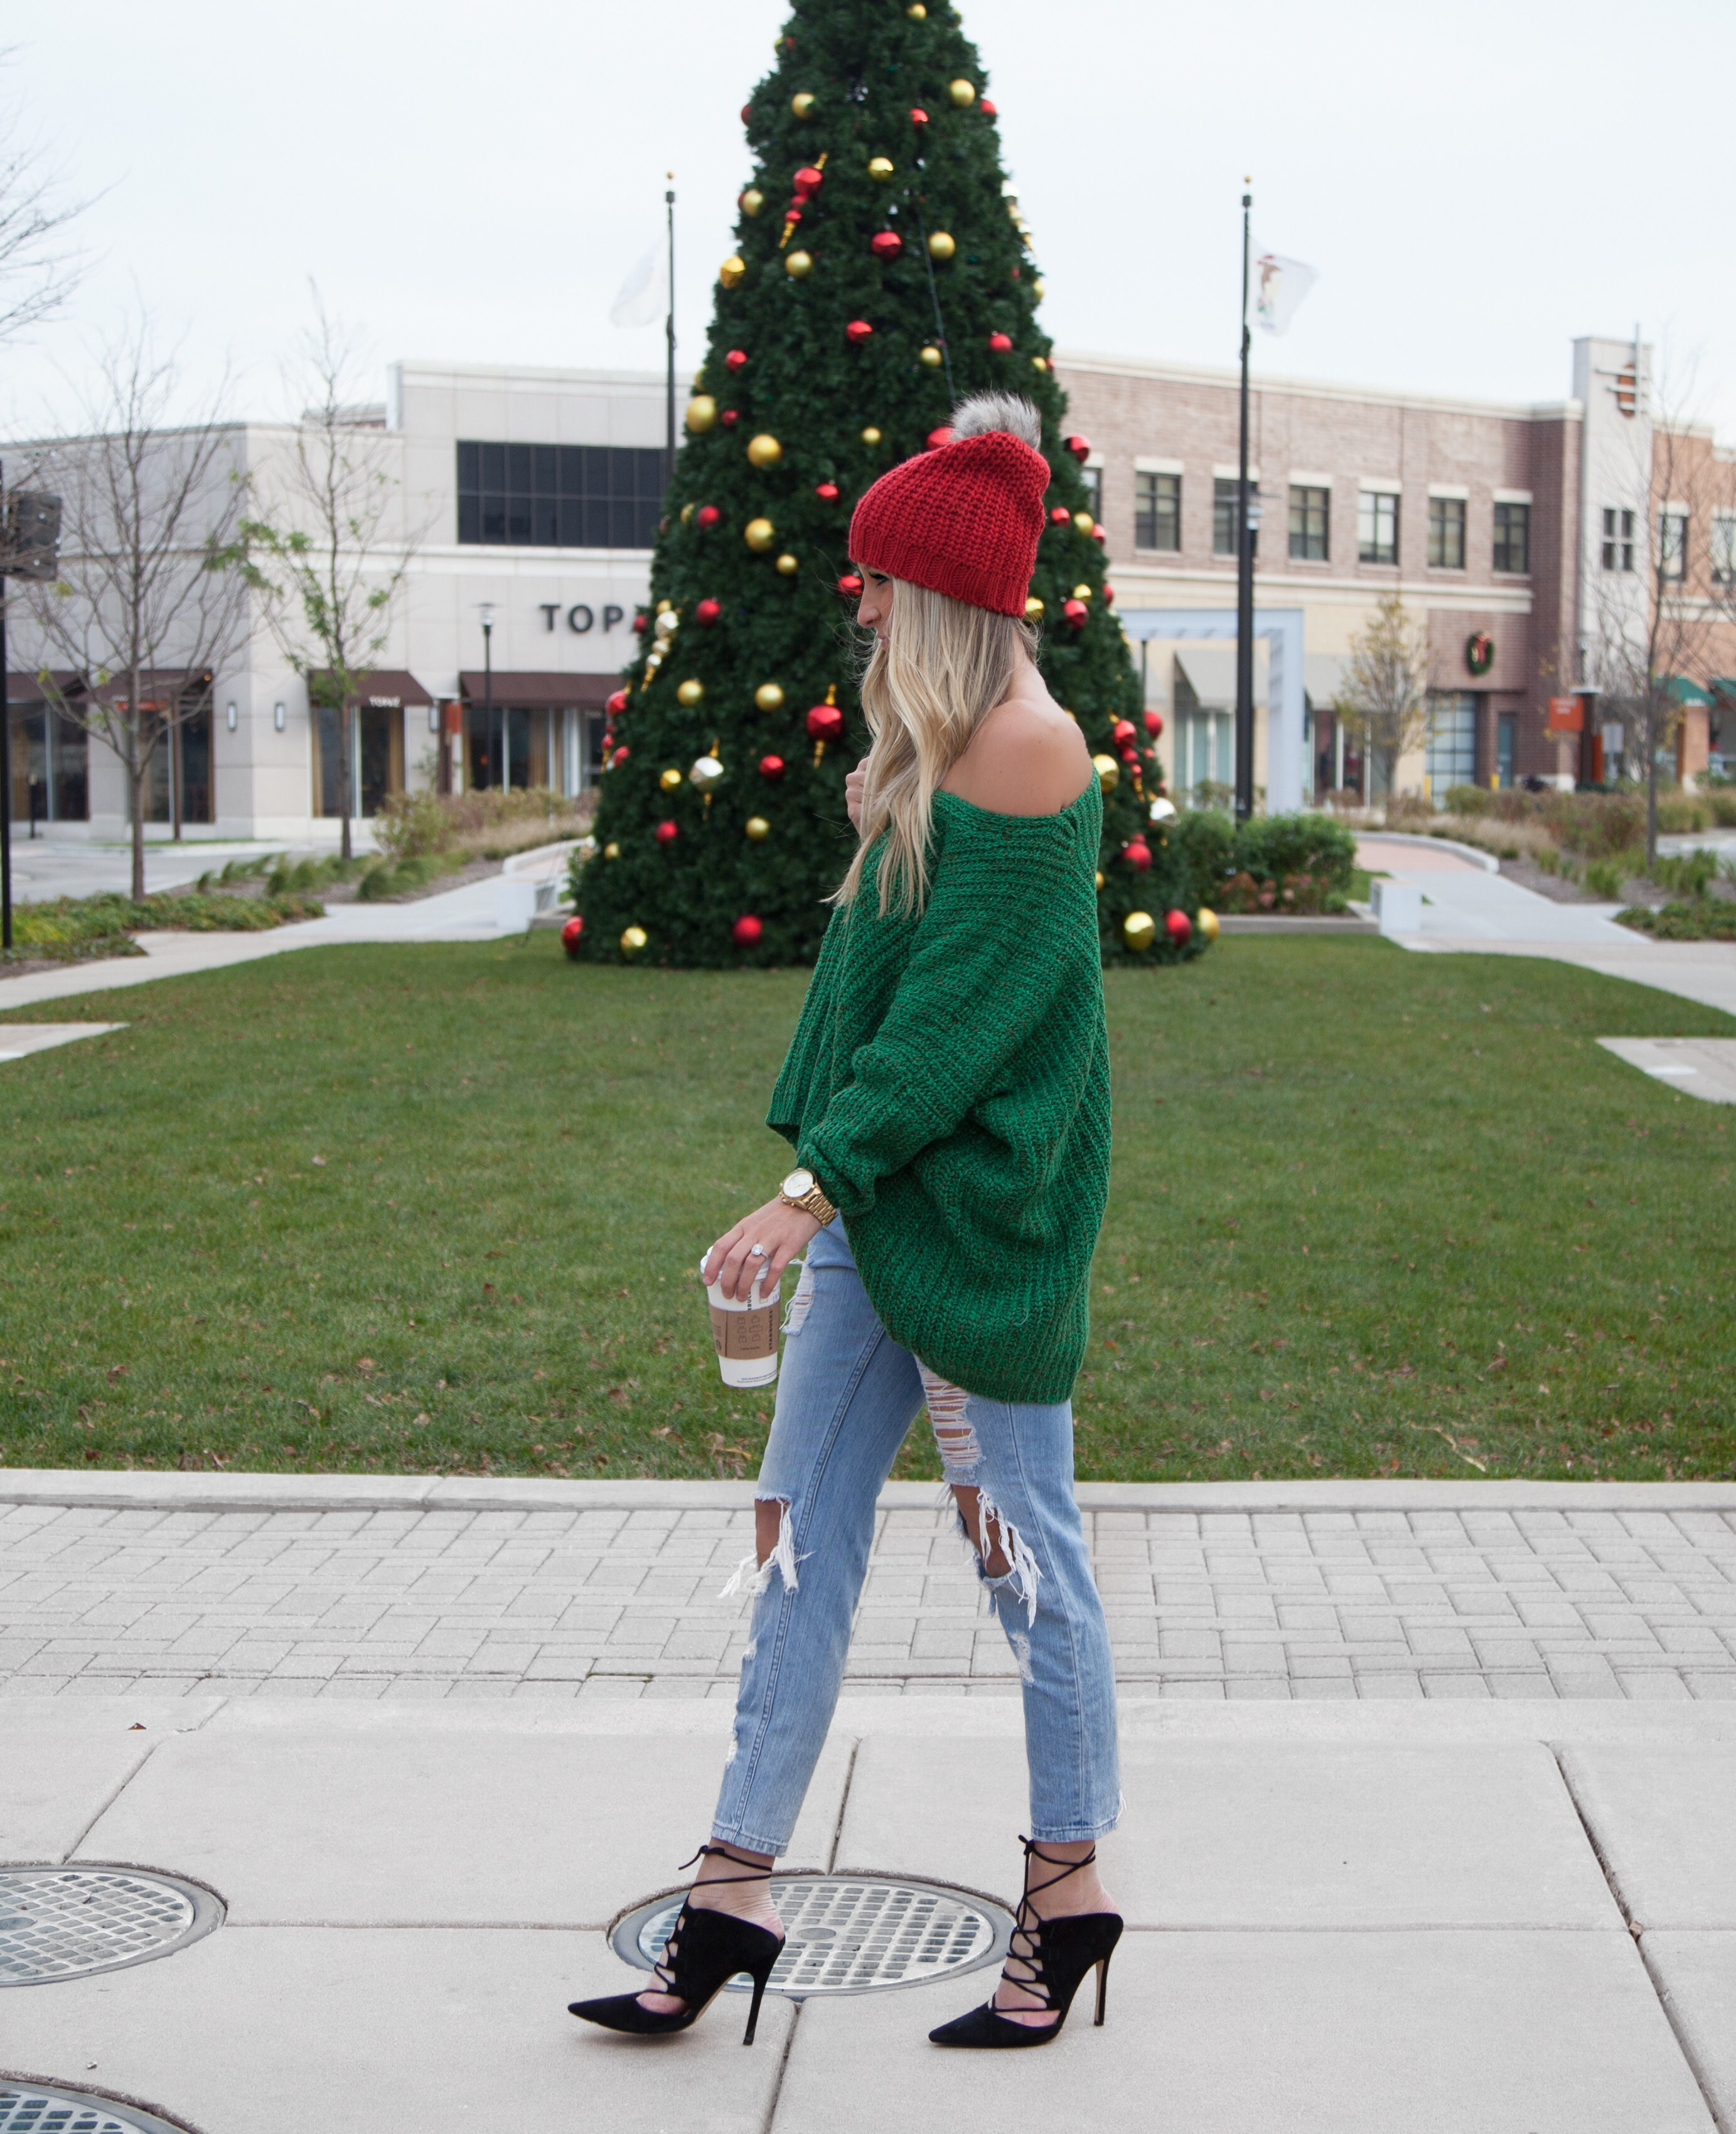 Green Sweater + Red Beanie